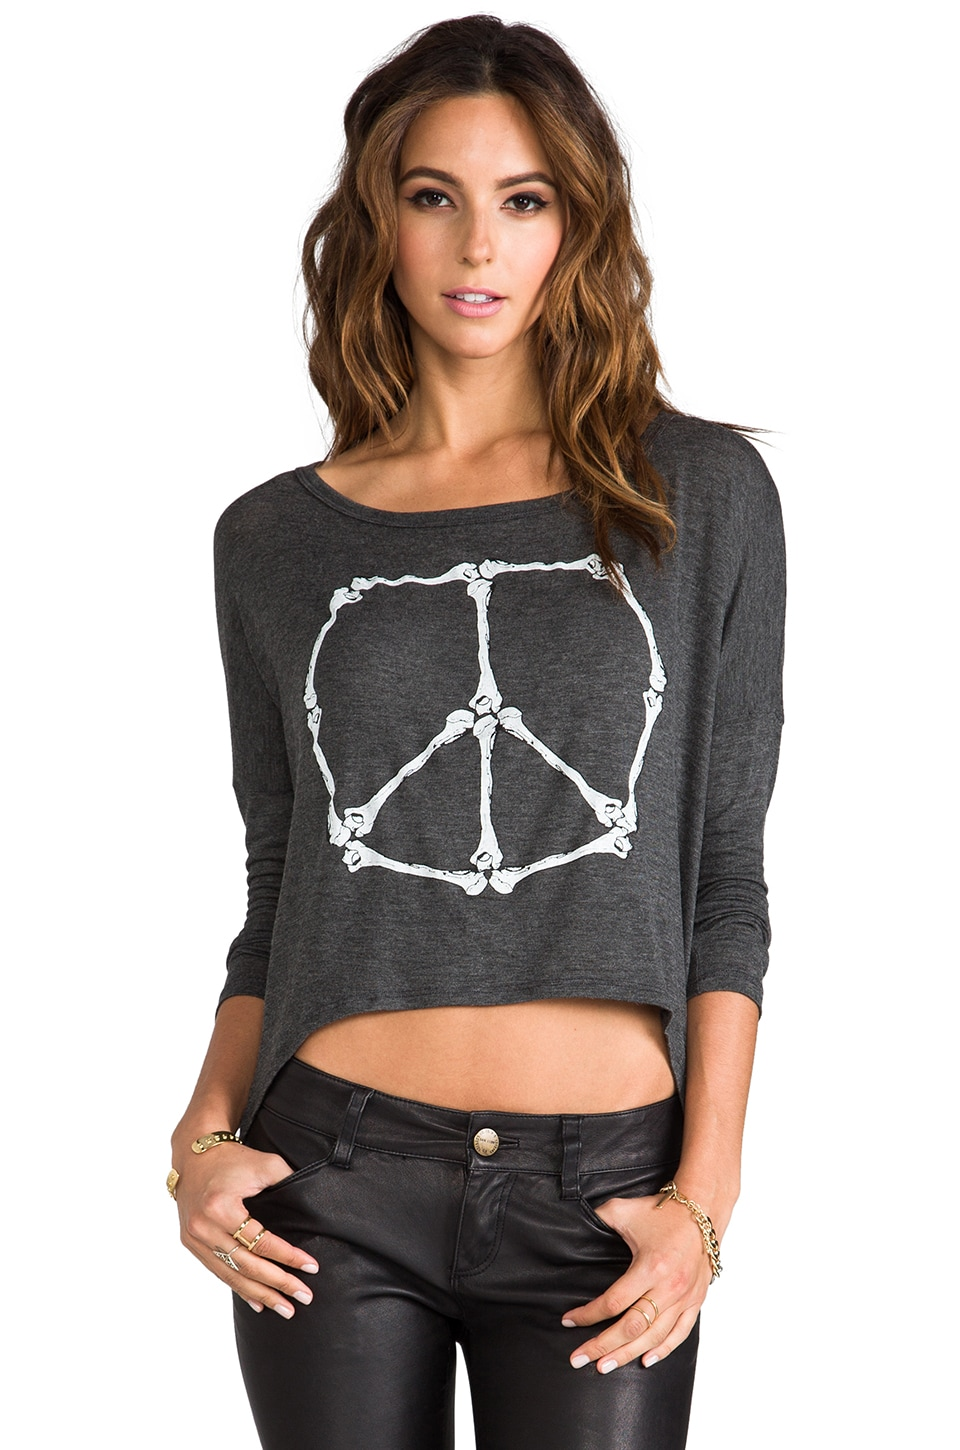 Morning Warrior Peace Bones Long Sleeve Tee in Charcoal Heather